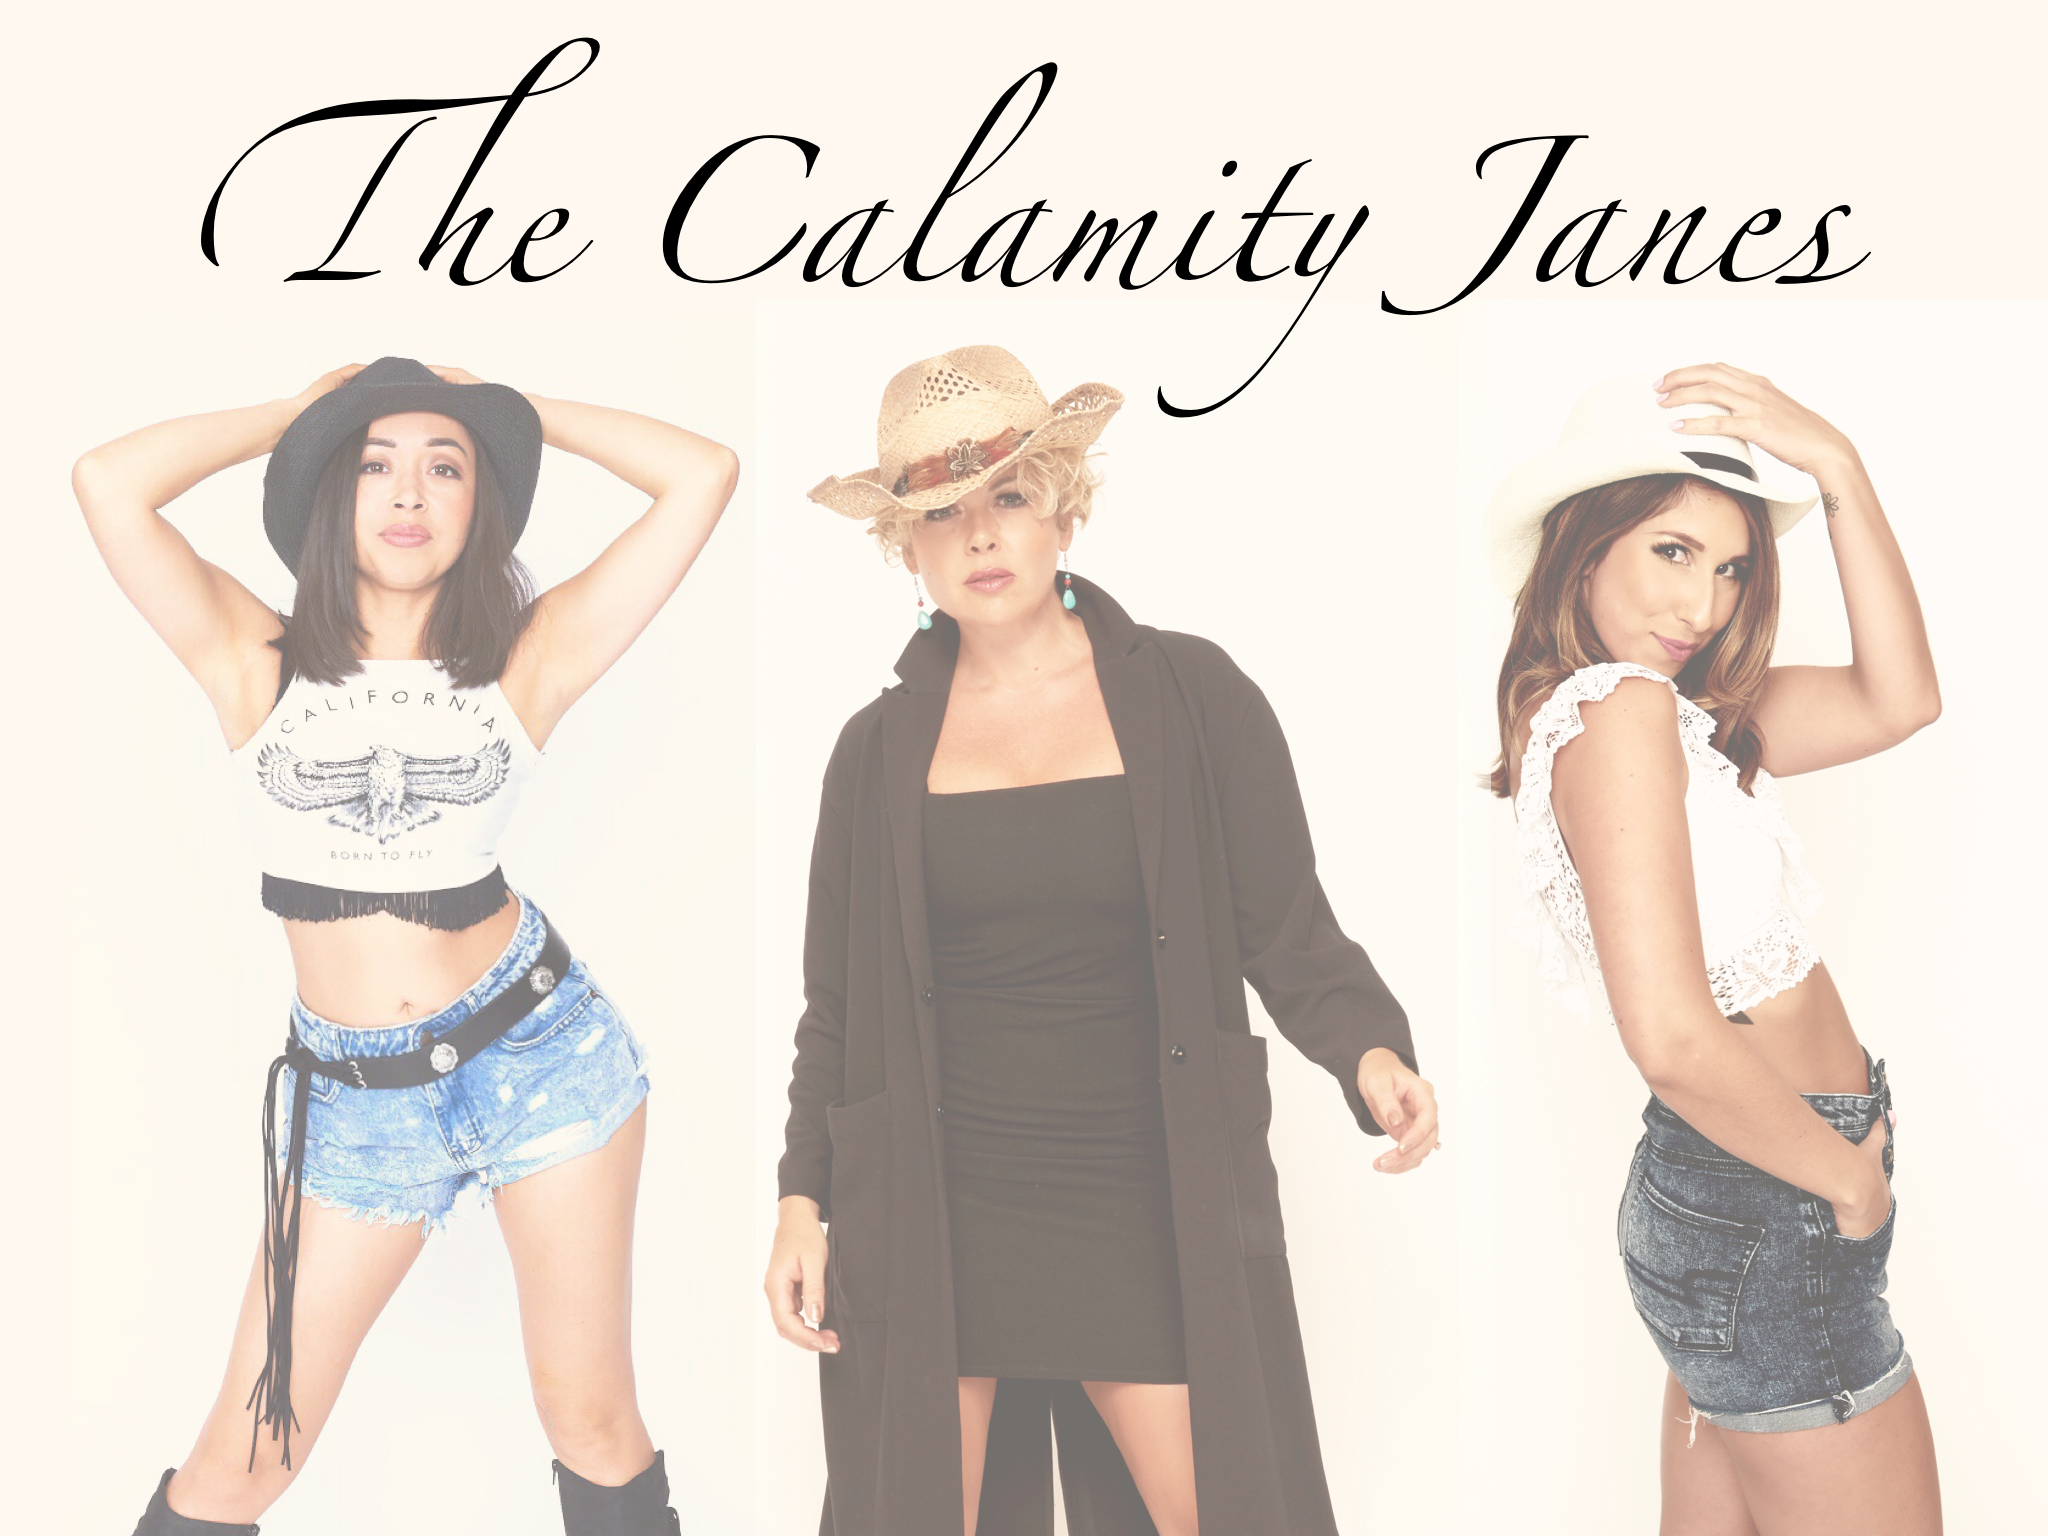 The Calamity Janes